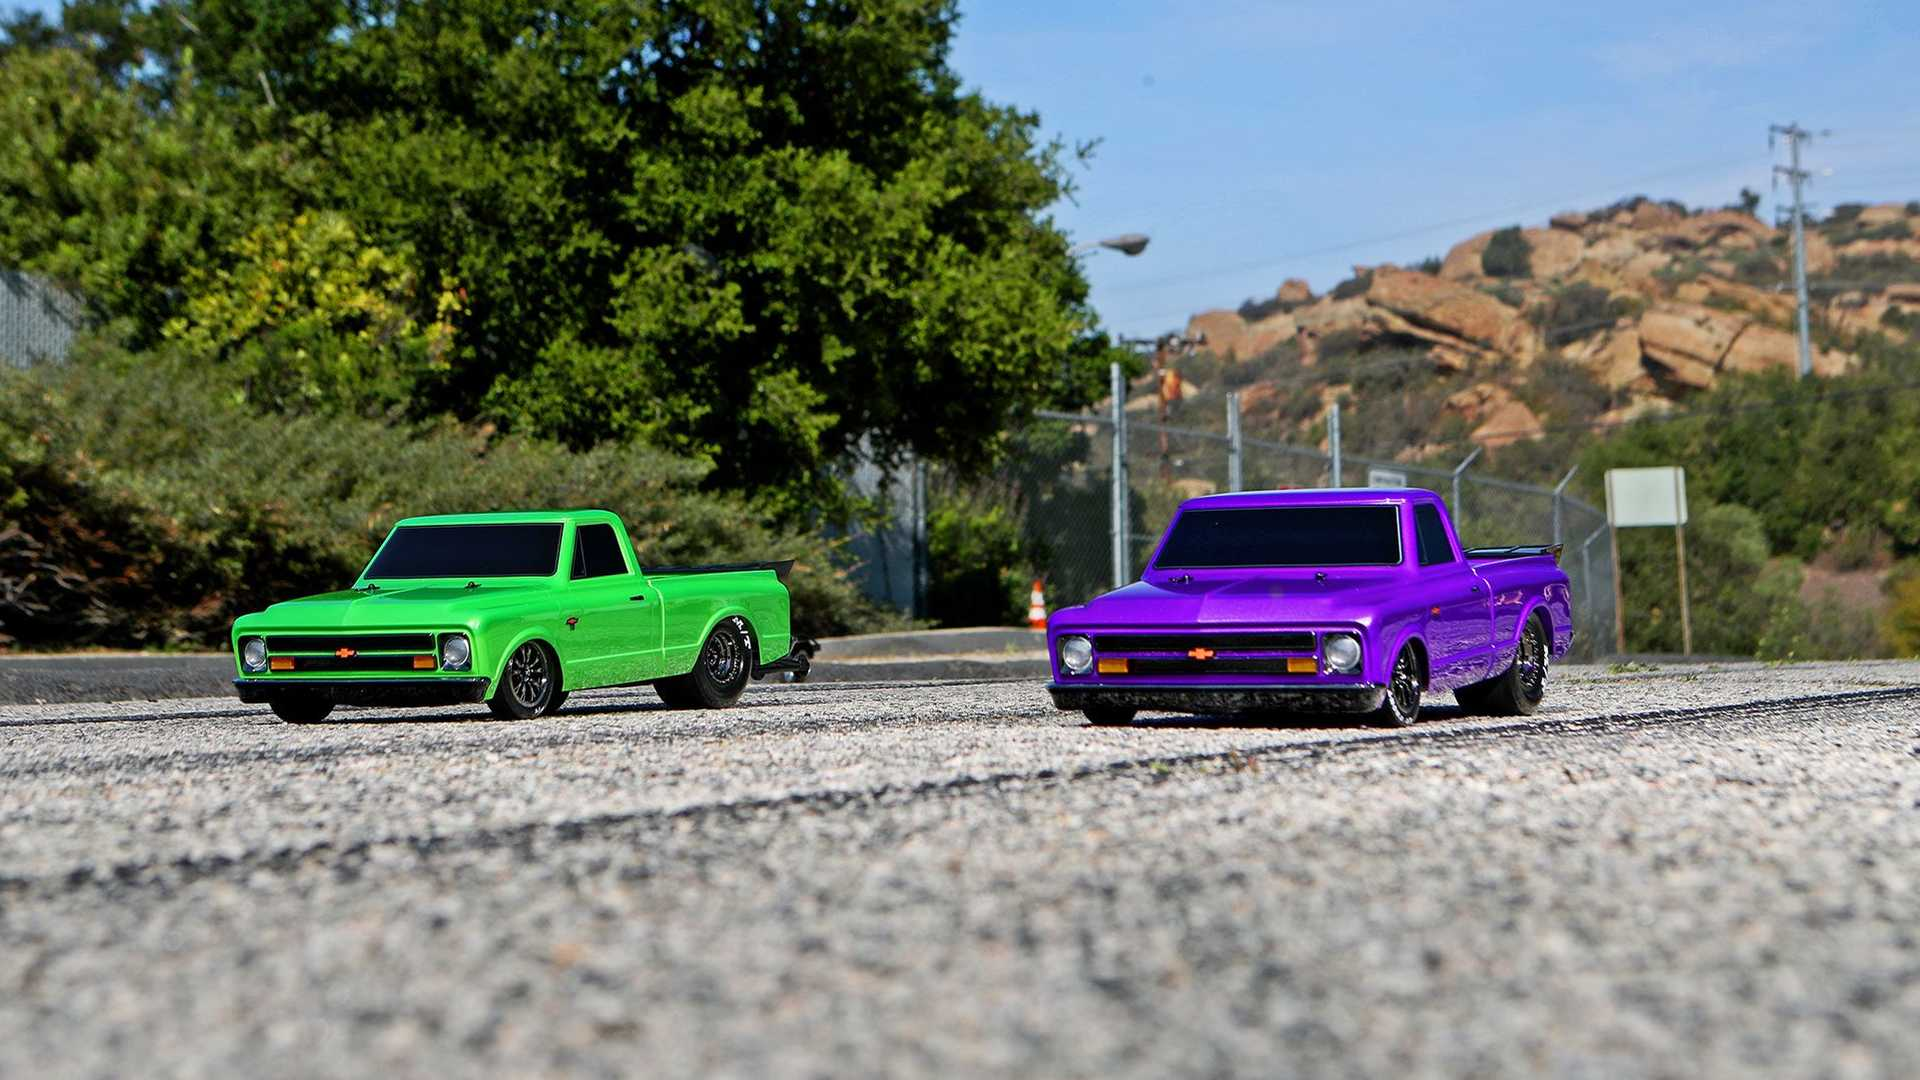 https://cdn.motor1.com/images/mgl/13lNW/s6/traxxas-drag-slash-1-10-scale-chevy-pickup-front-view.jpg